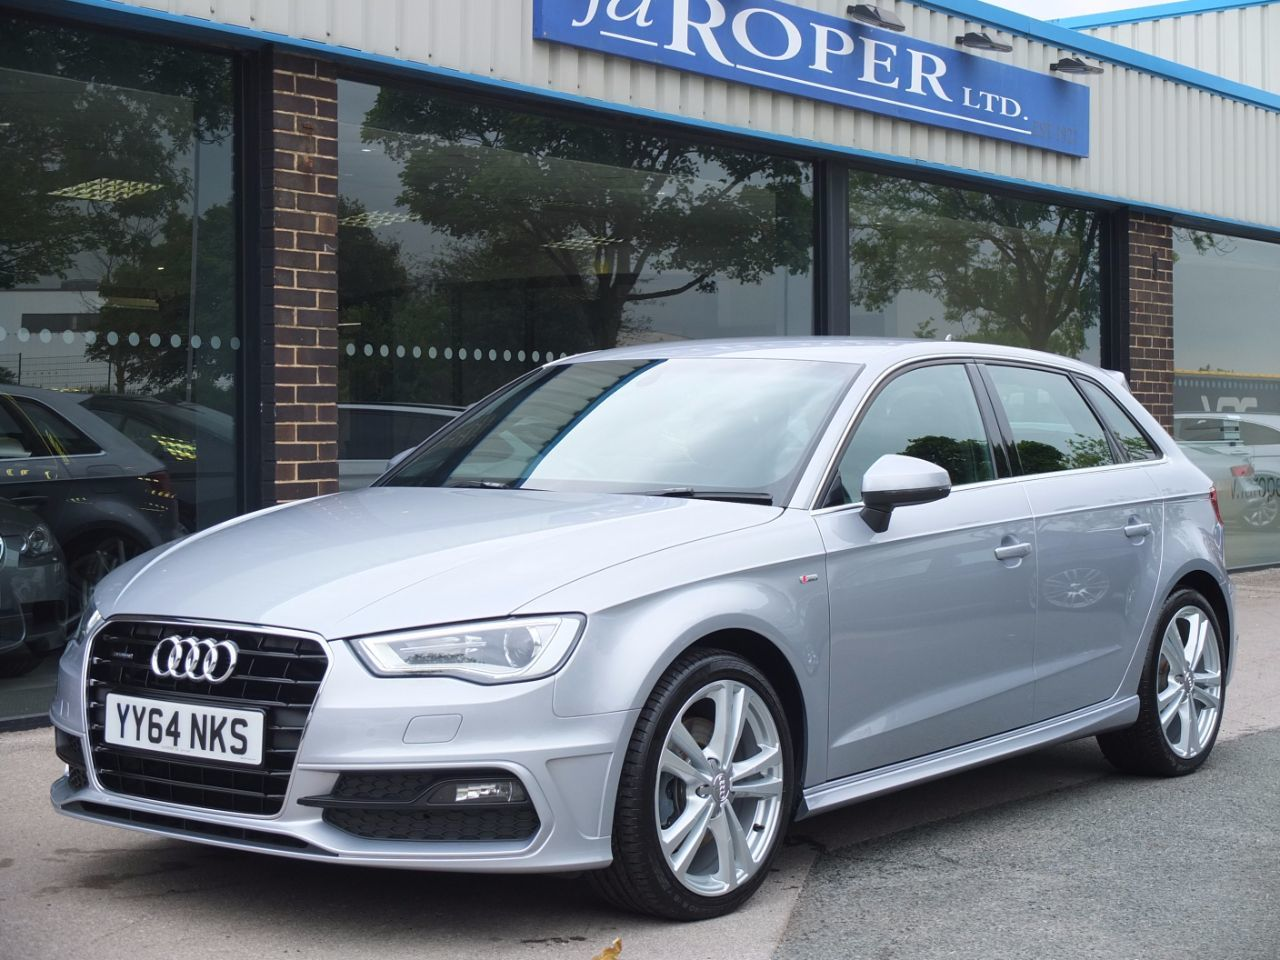 second hand audi a3 sportback 2 0 tdi quattro s line s tronic 184ps for sale in bradford west. Black Bedroom Furniture Sets. Home Design Ideas